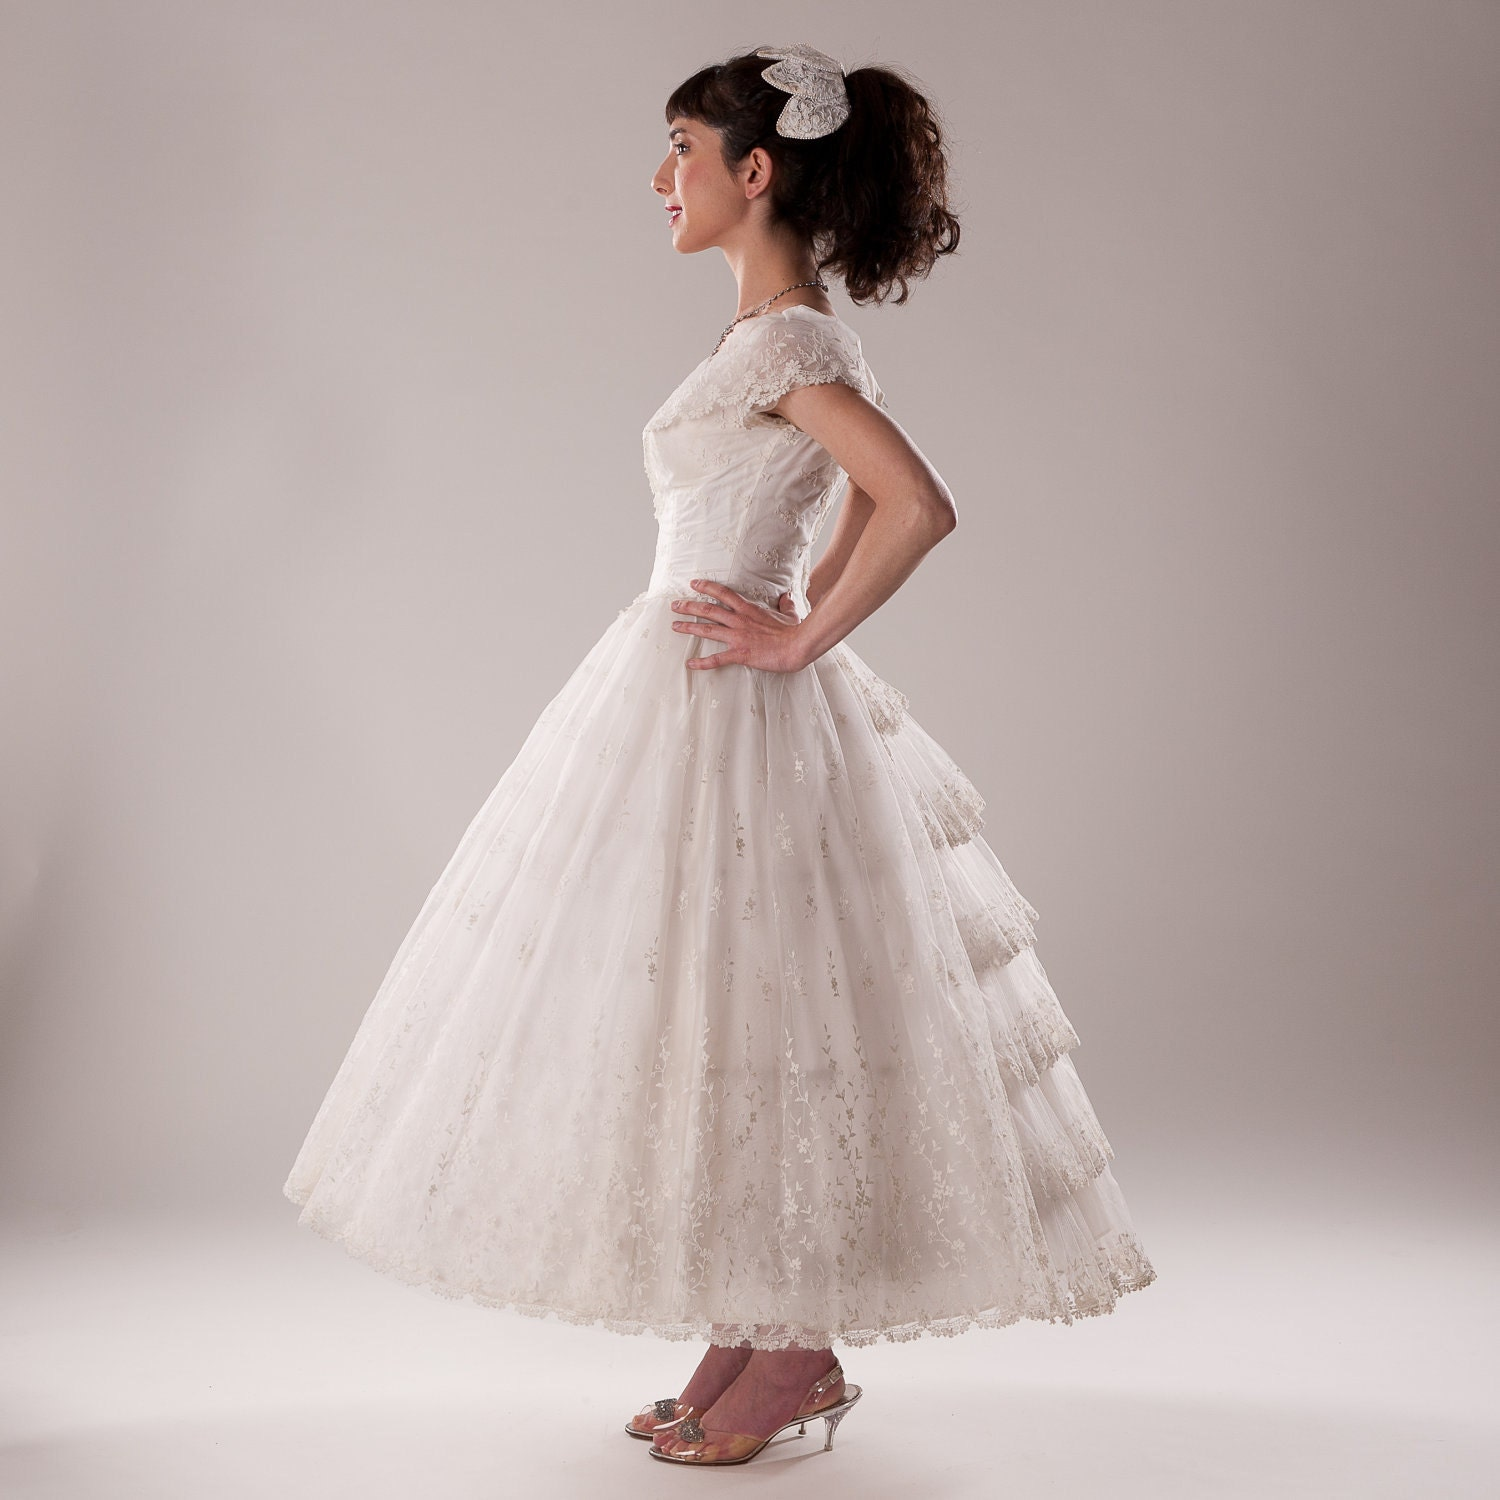 Reserved Vintage 1950s Tulle Wedding Dress Gown Corset Hoop